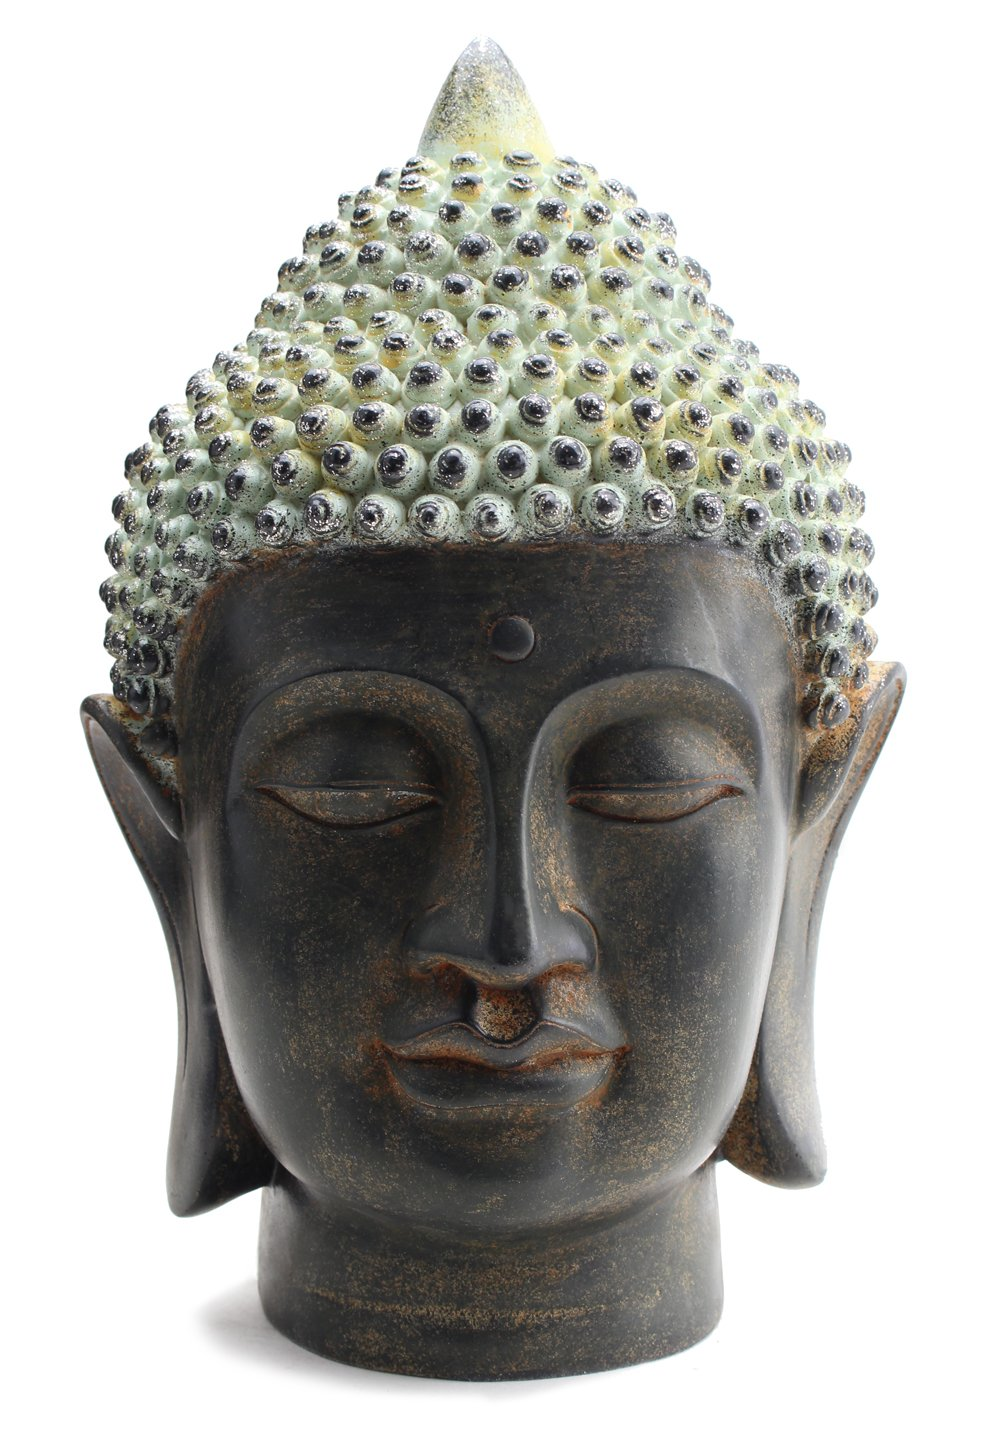 Smiling Meditating Buddha Shakyamuni Head Statue 10.5'' Tall Blessing Mercy & Love Peaceful Feng Shui Idea (G16628) - We Pay Your Sales Tax